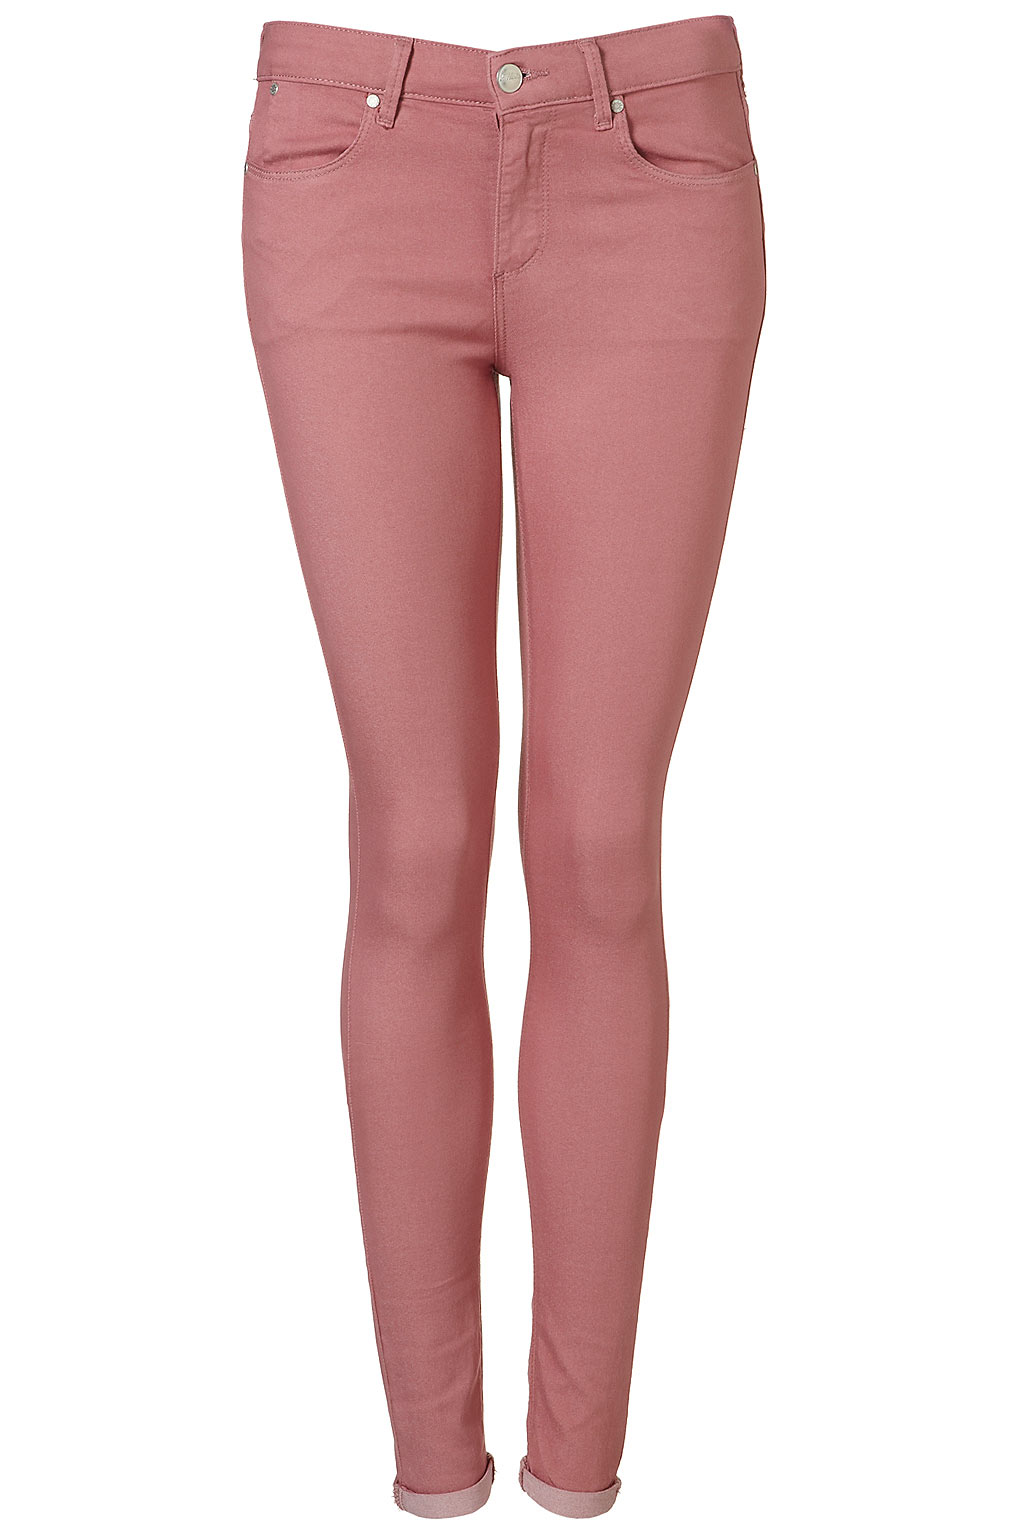 Find pink from the Womens department at Debenhams. Shop a wide range of Jeans products and more at our online shop today.